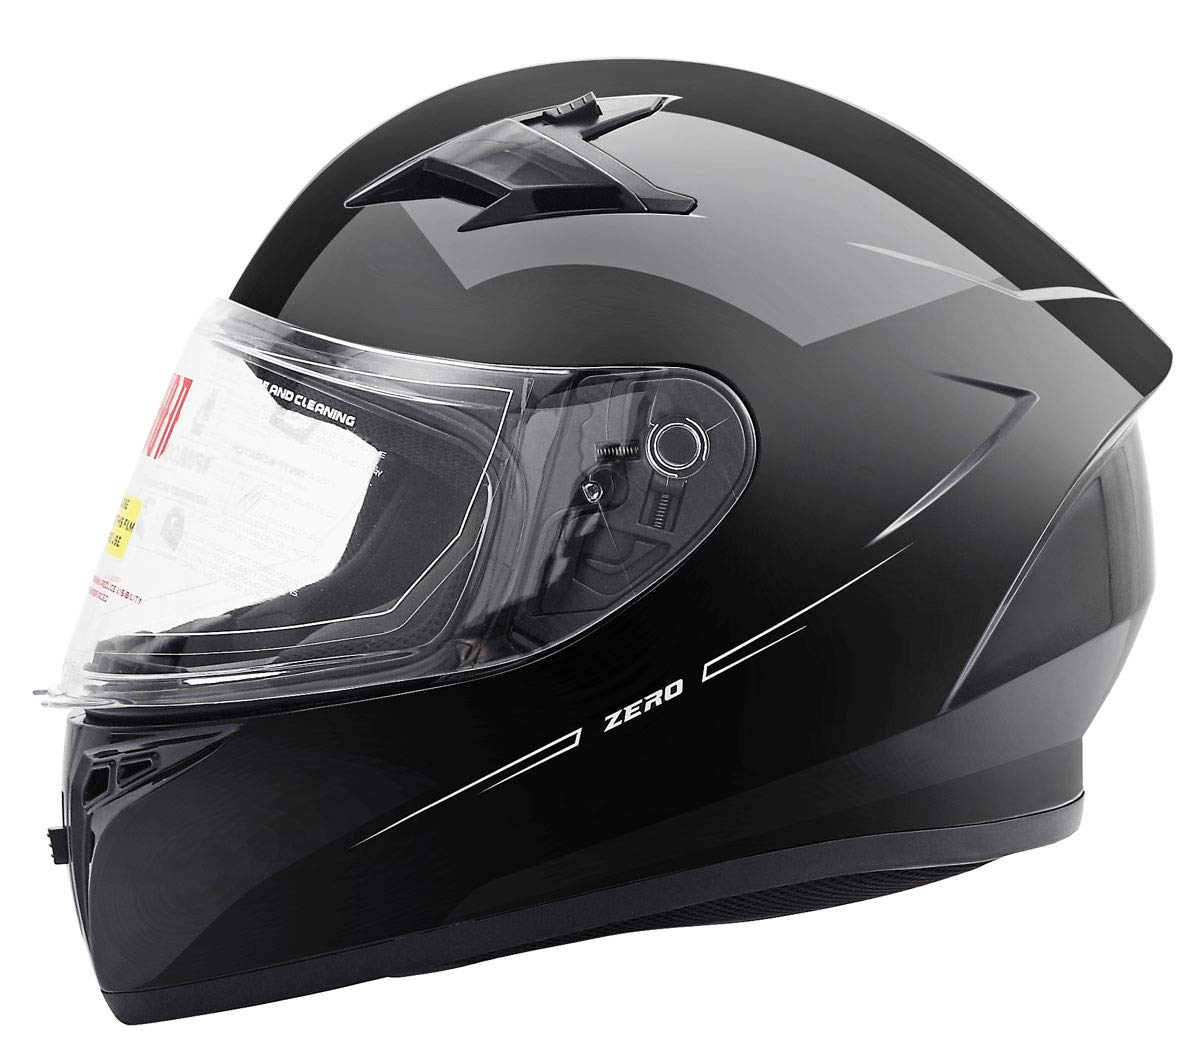 One Extra Smoked Shield XL, Gloss Black Orion Zero Full-Face Motorcycle Helmets DOT Approved